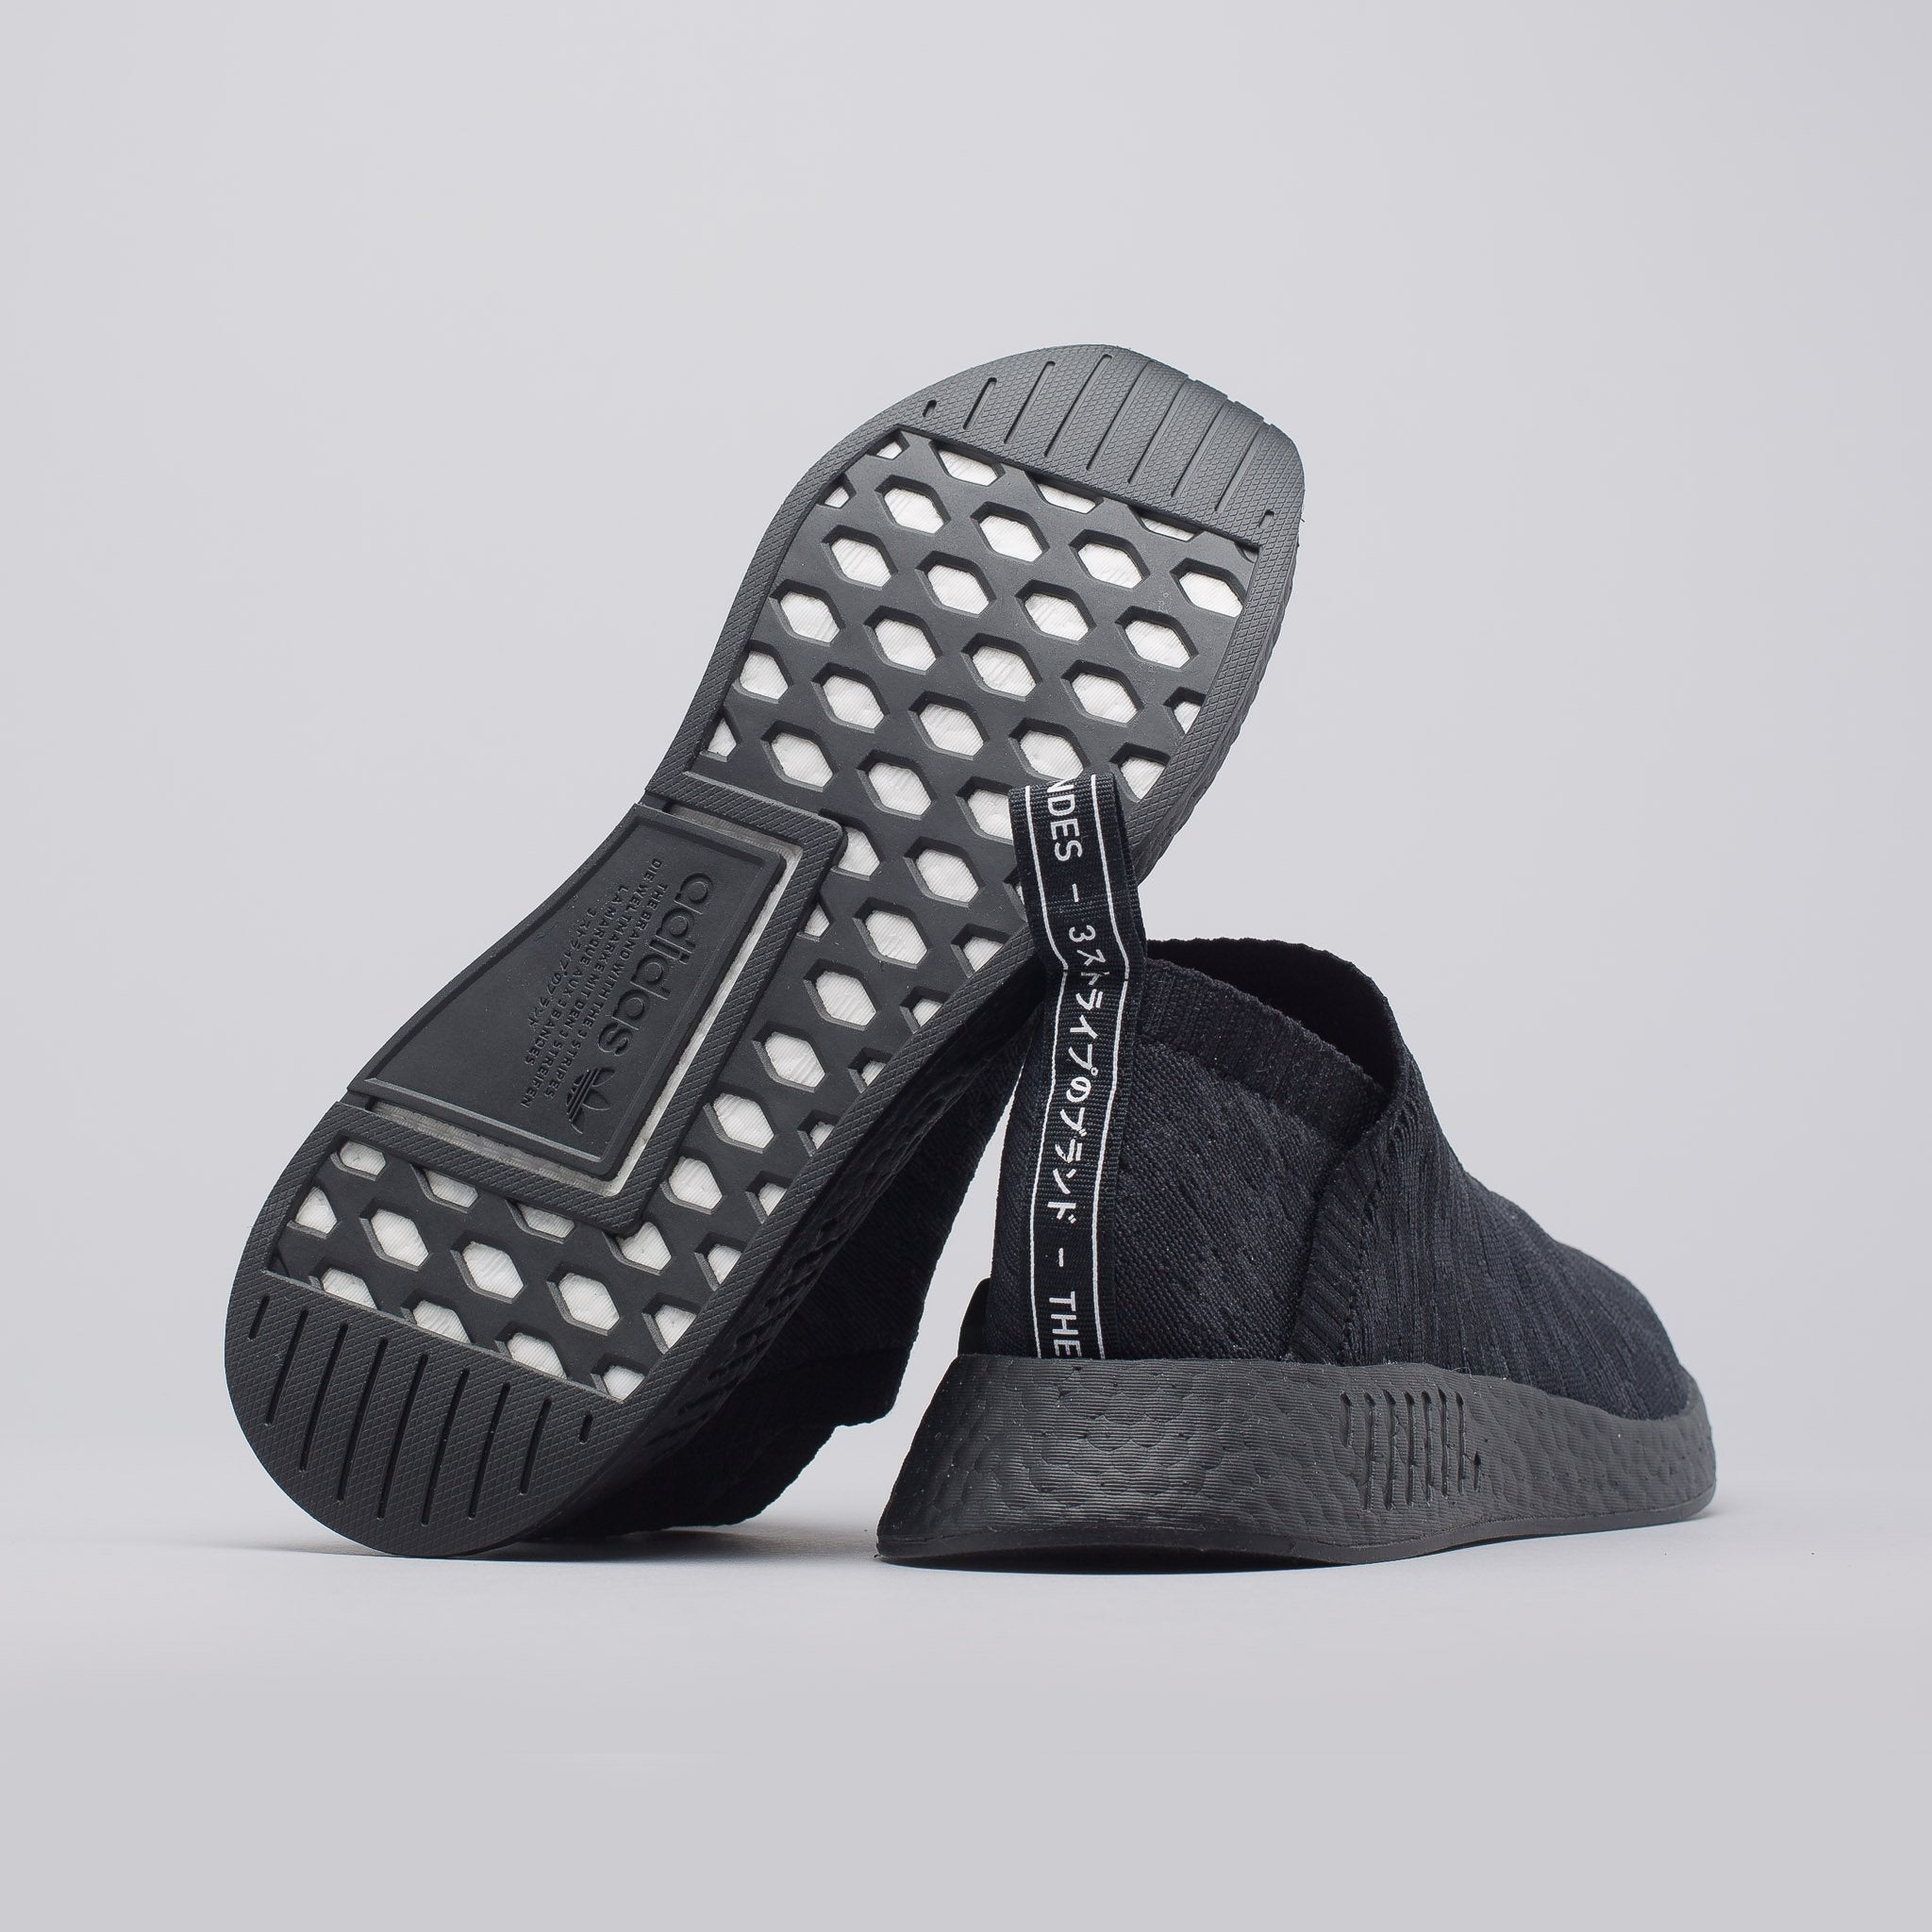 f31c4588d2c NMD CS2 Primeknit in Core Black Carbon – PZOZO